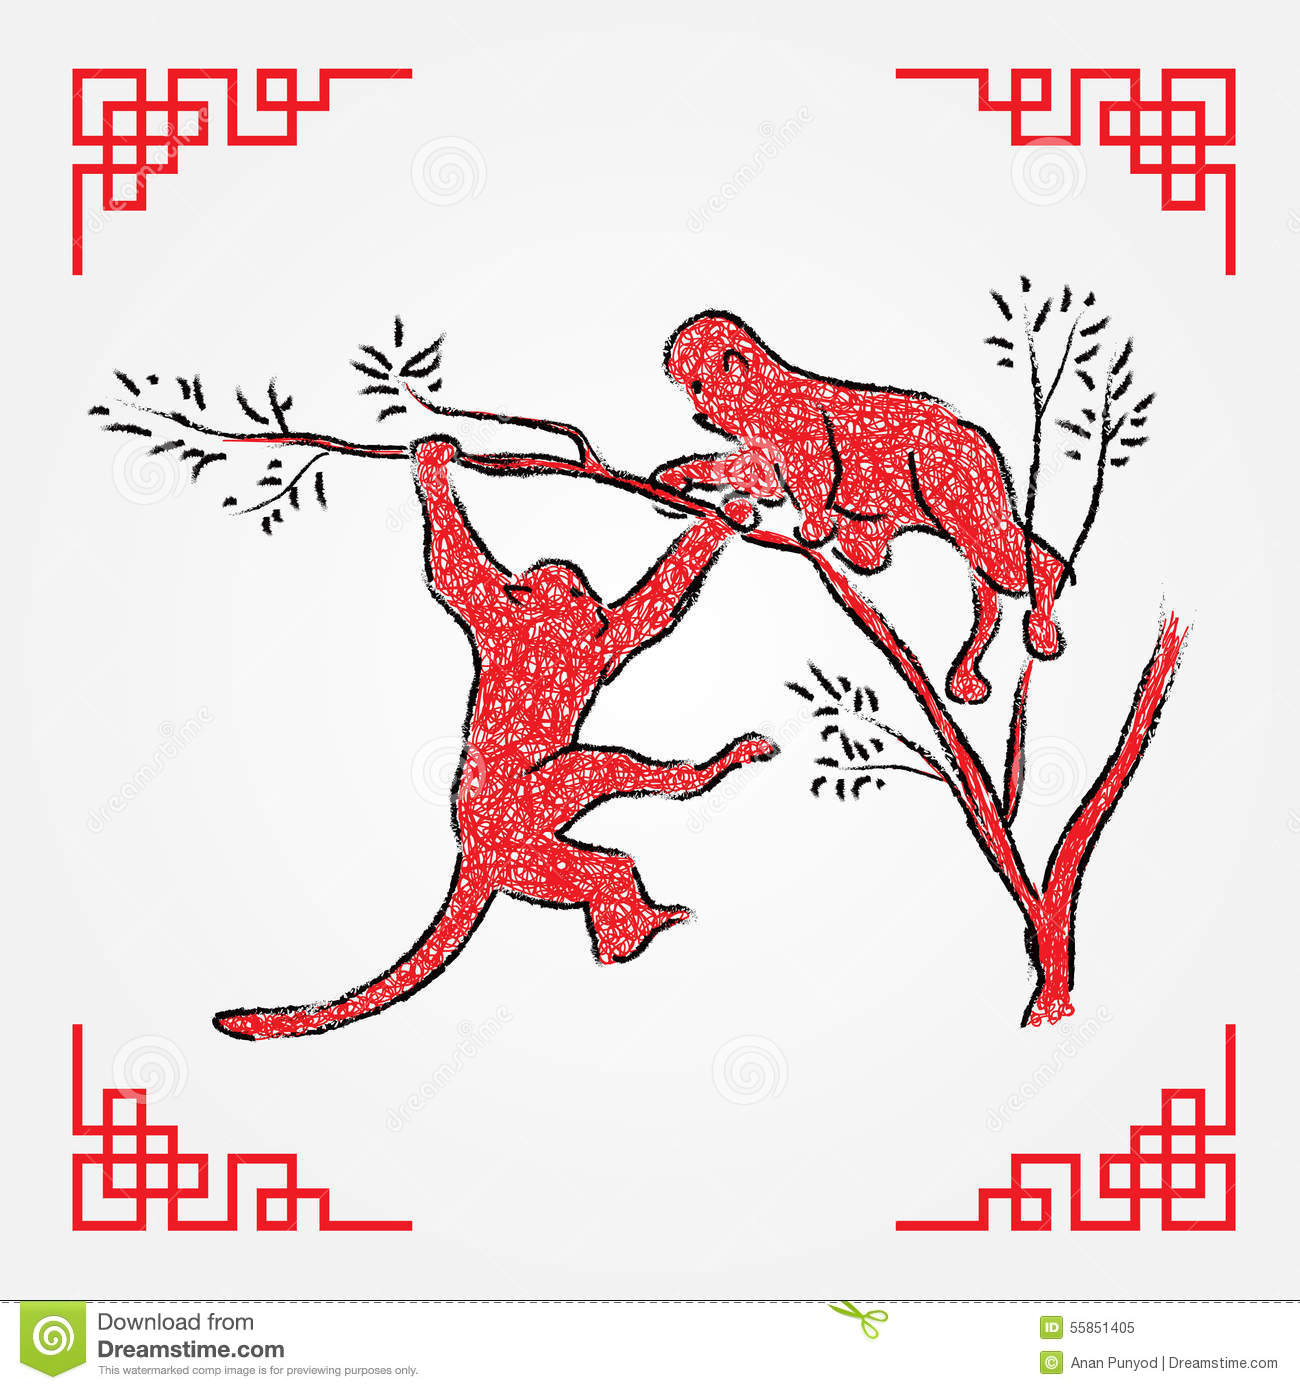 Drawing Red Lines With Green Ink : Red ink drawing line art monkey zodiac stock vector